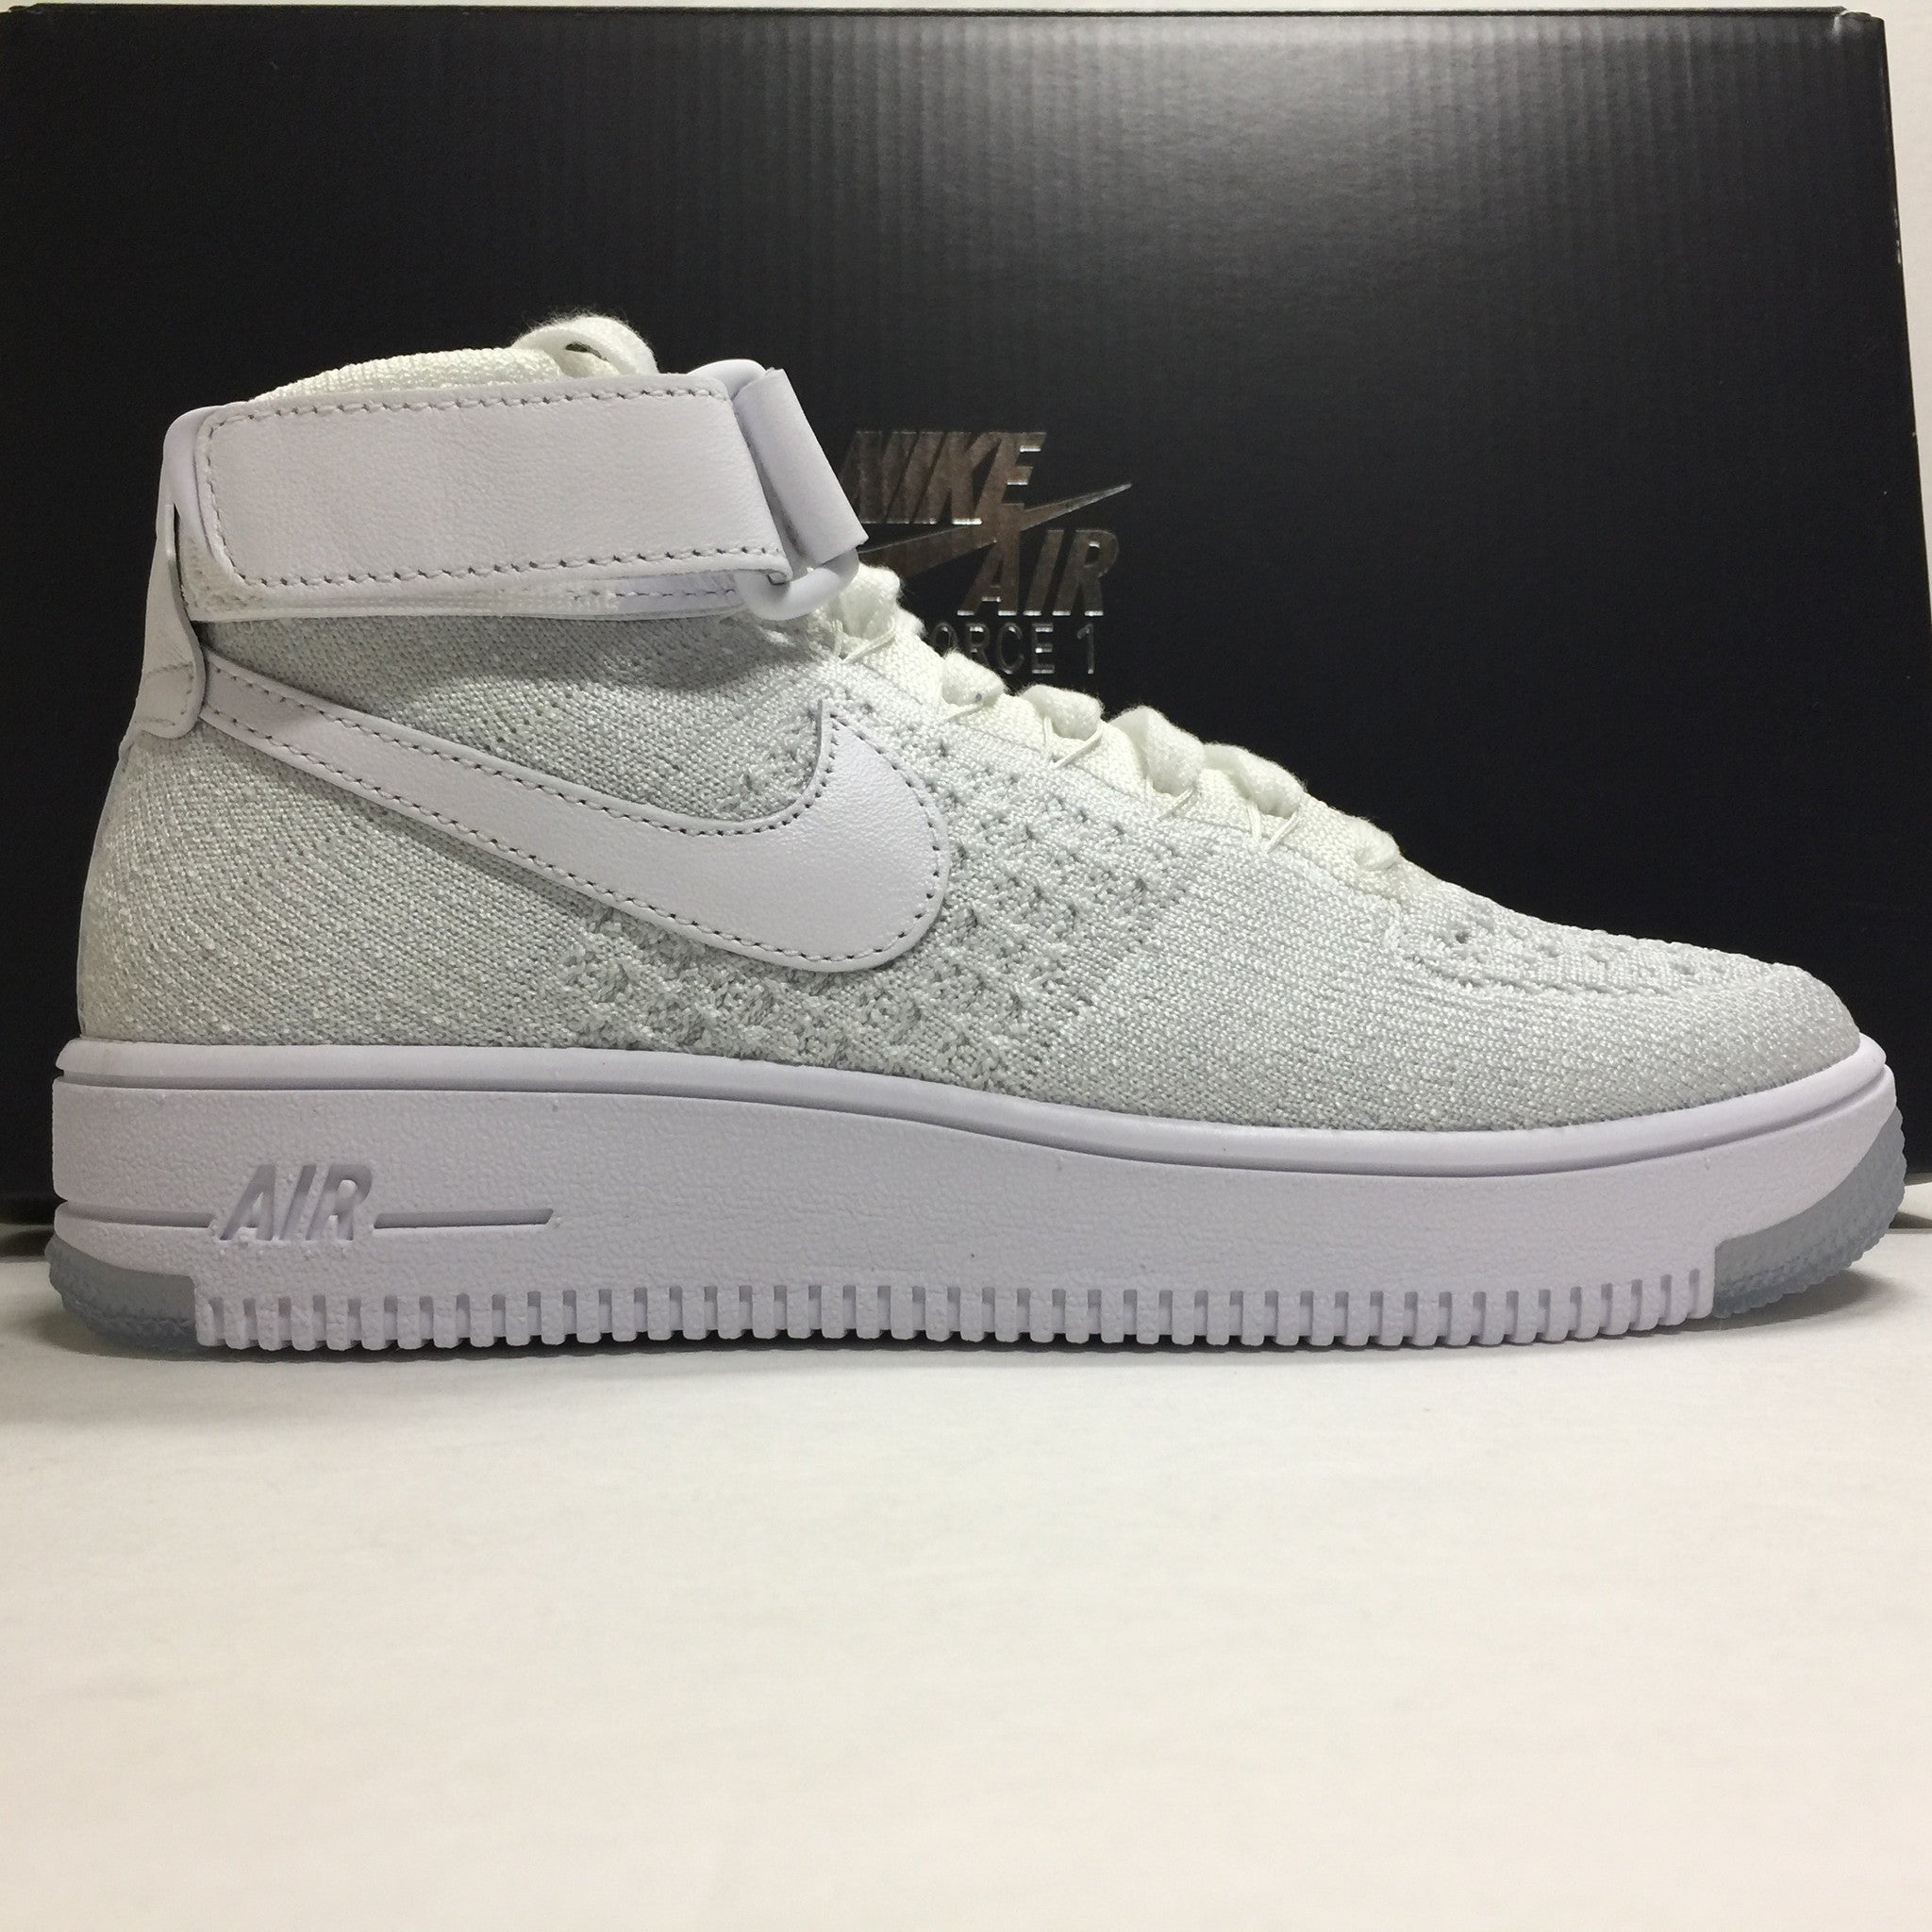 DS W Nike Air Force 1 Flyknit High White Size 6/6.5/Size 7.5 - DOPEFOOT  - 1